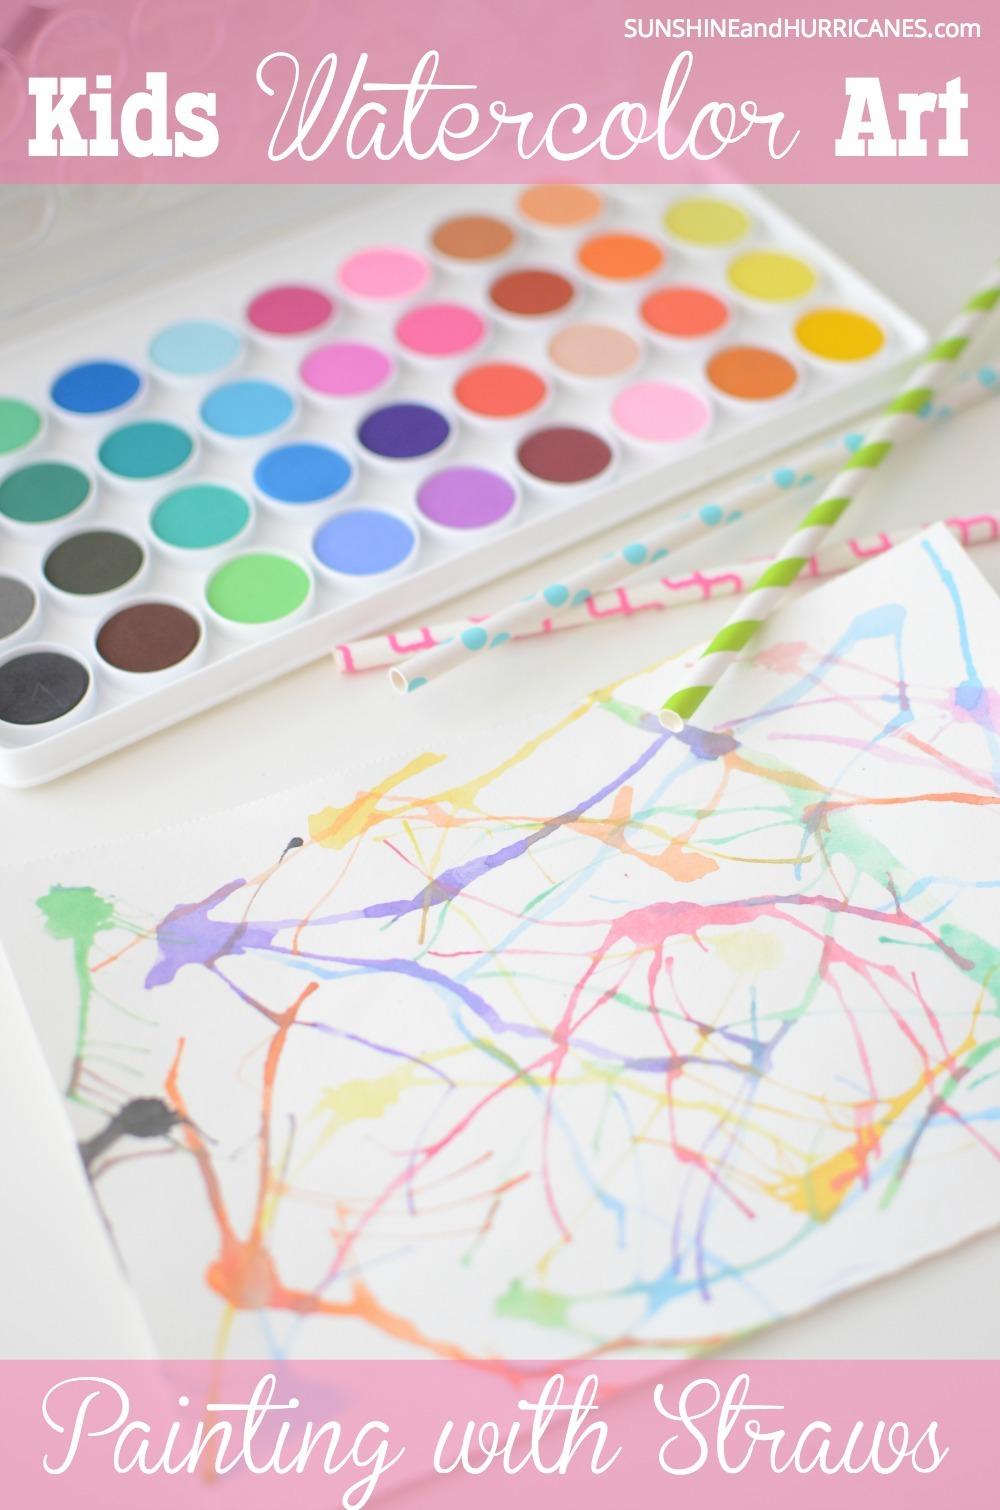 Watercolor art is a great way to encourage creativity in kids. It's simple and not too messy and their finished masterpieces are always so pretty. Try this approach using everyday paper drinking straws to paint as something a little bit different.